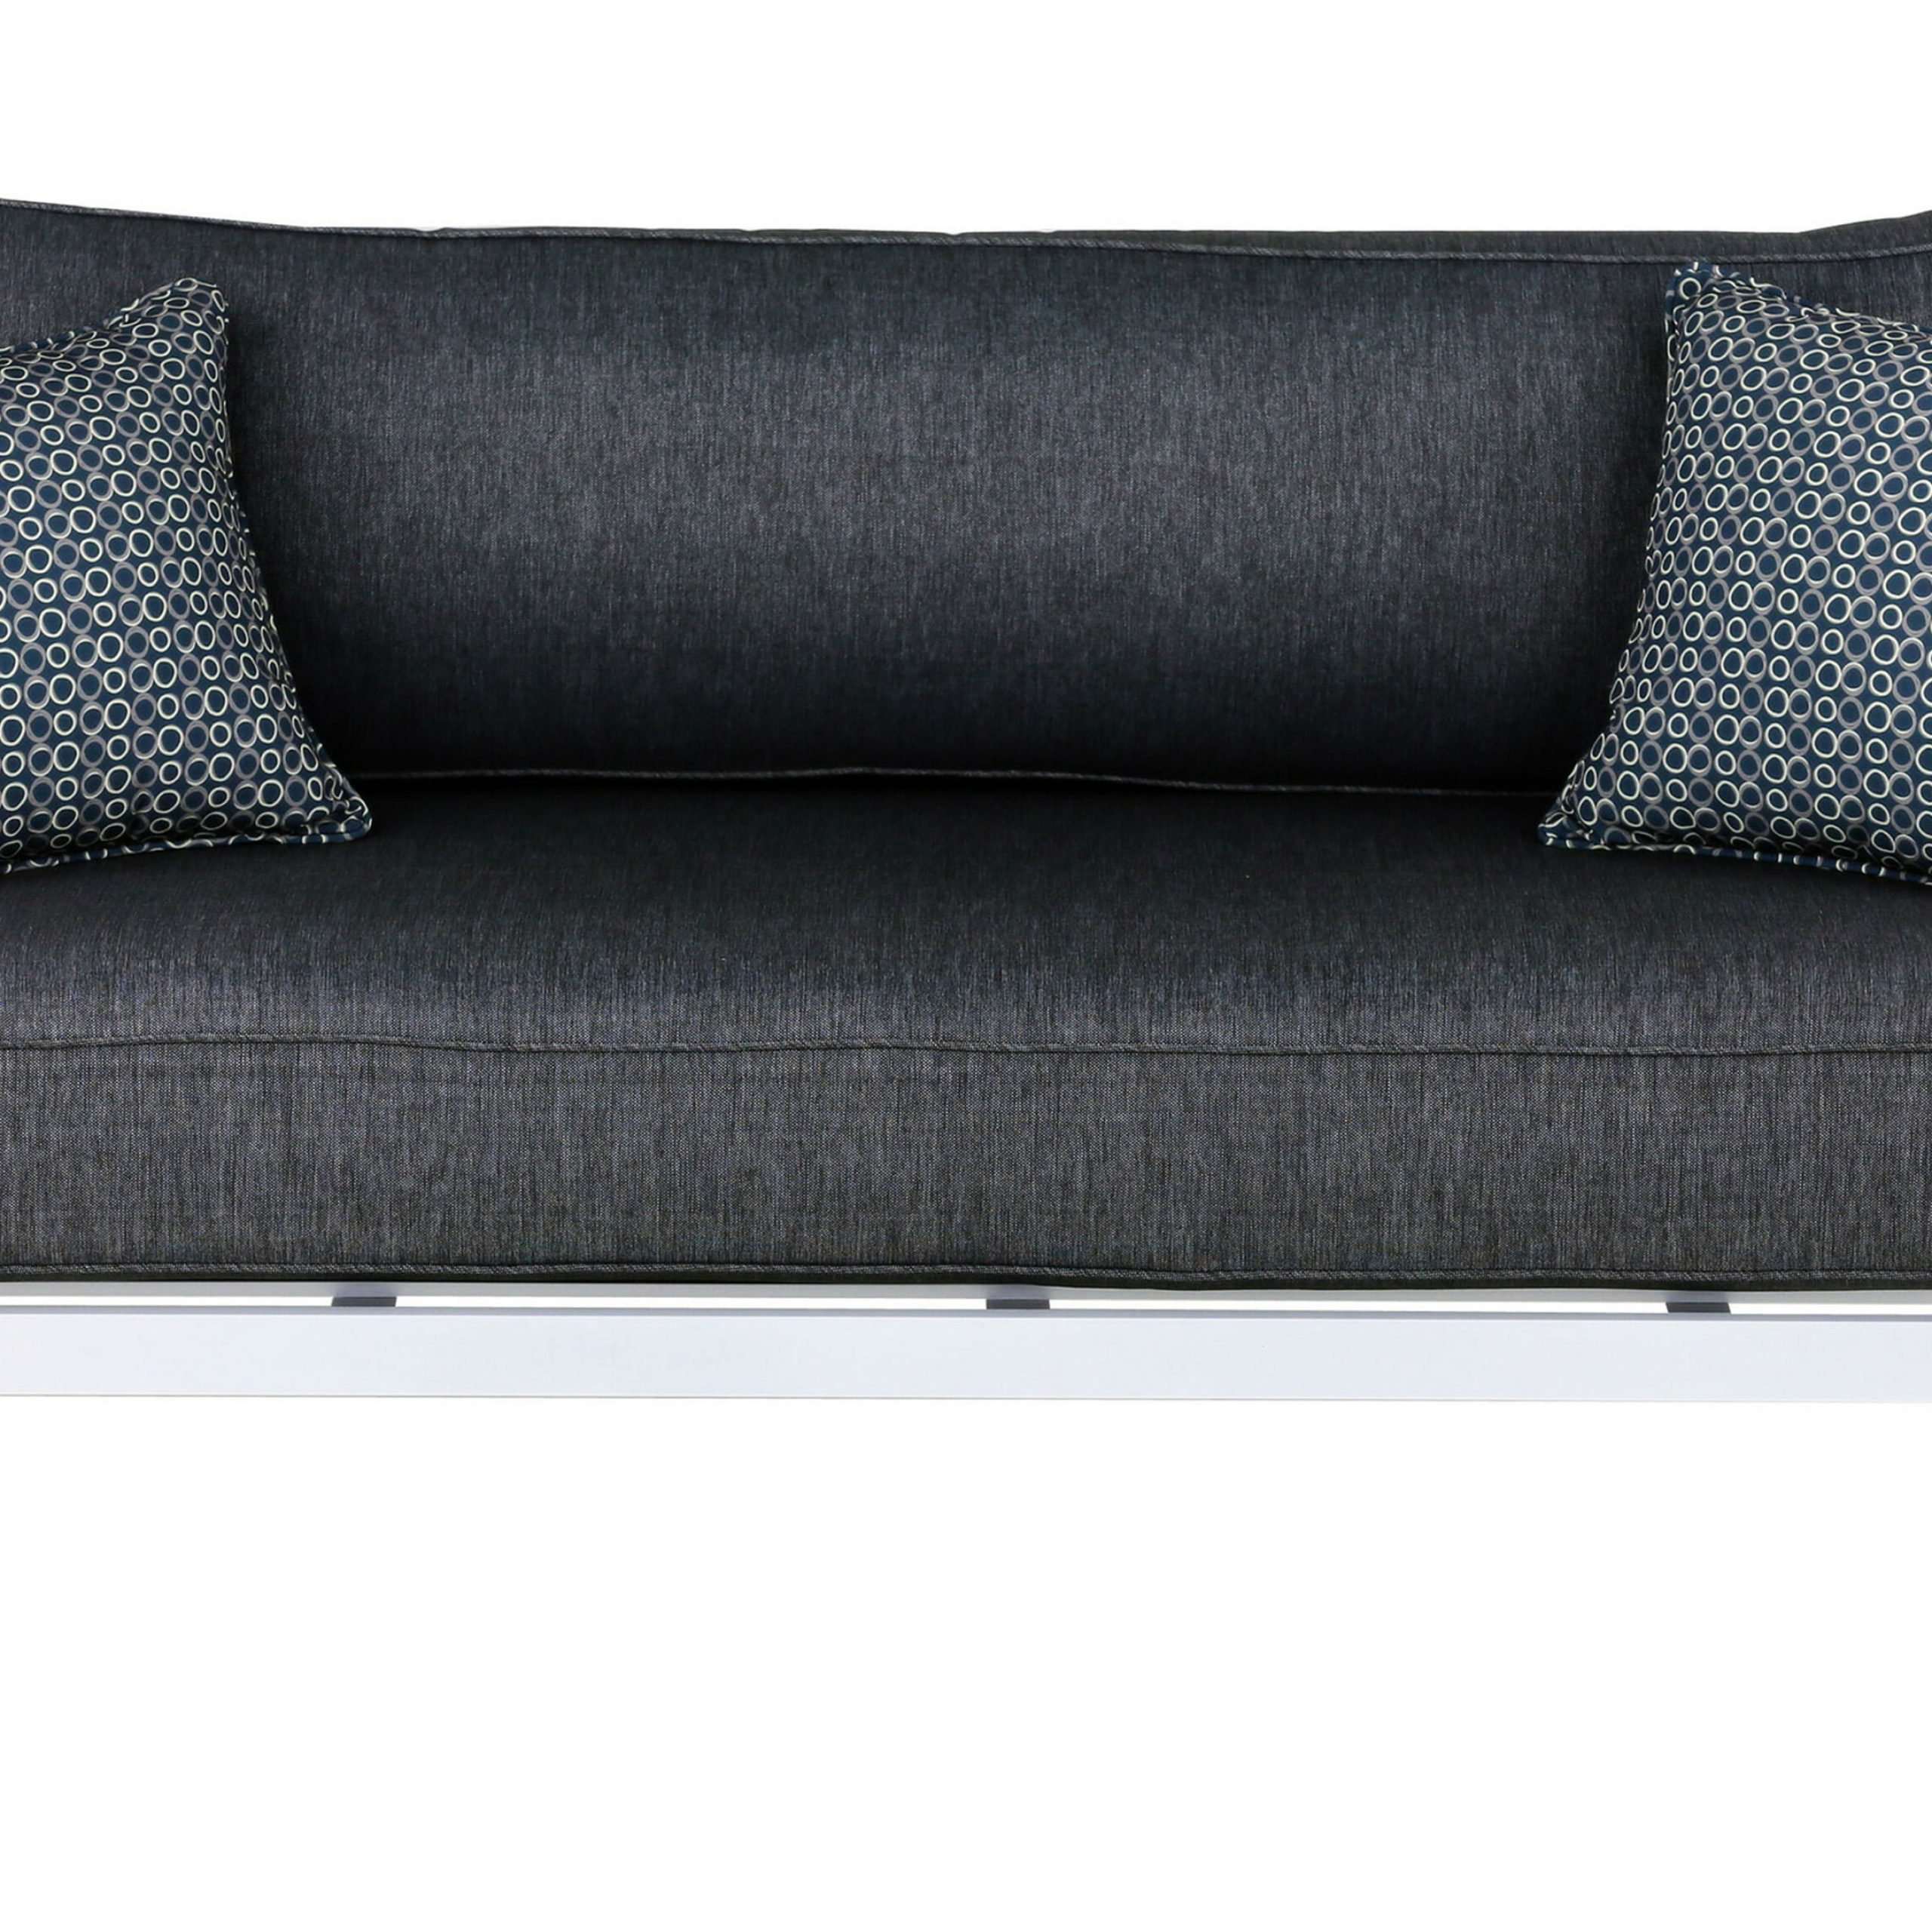 Well Known Paloma Sofas With Cushions Regarding Paloma Sofa With Cushions (View 11 of 25)